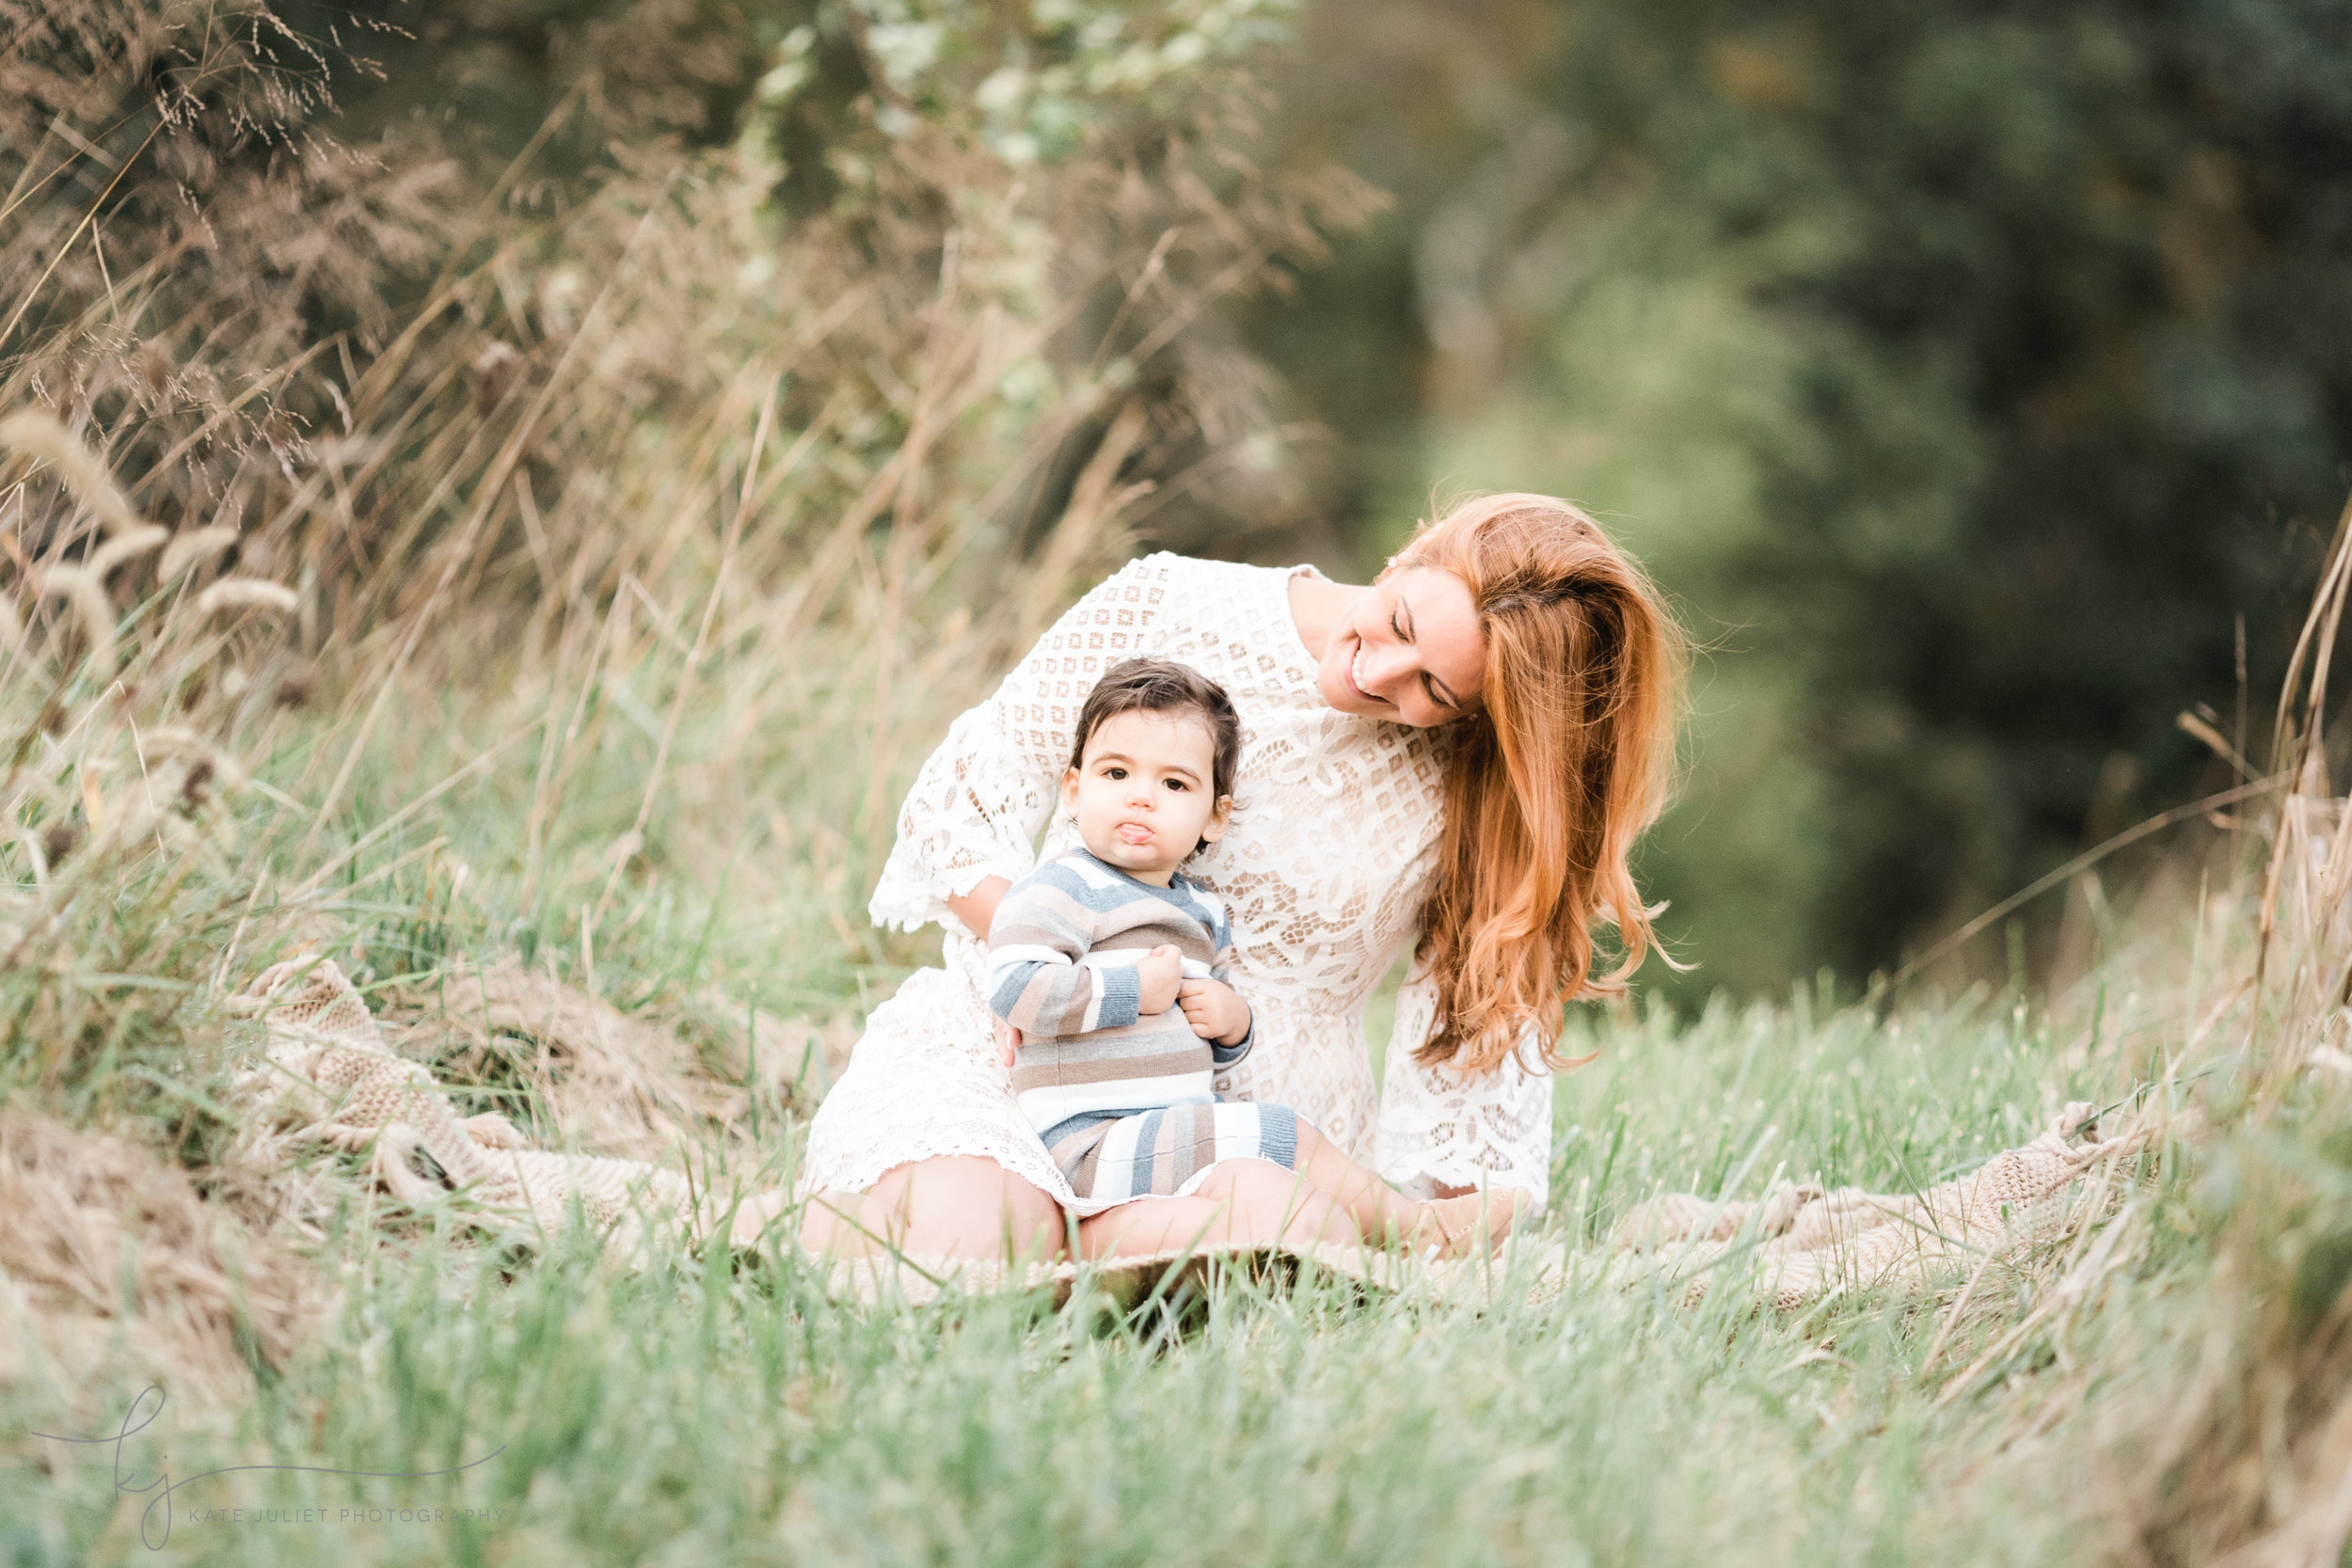 kate_juliet_photography_brittany-and-baron_baby_web-19.jpg